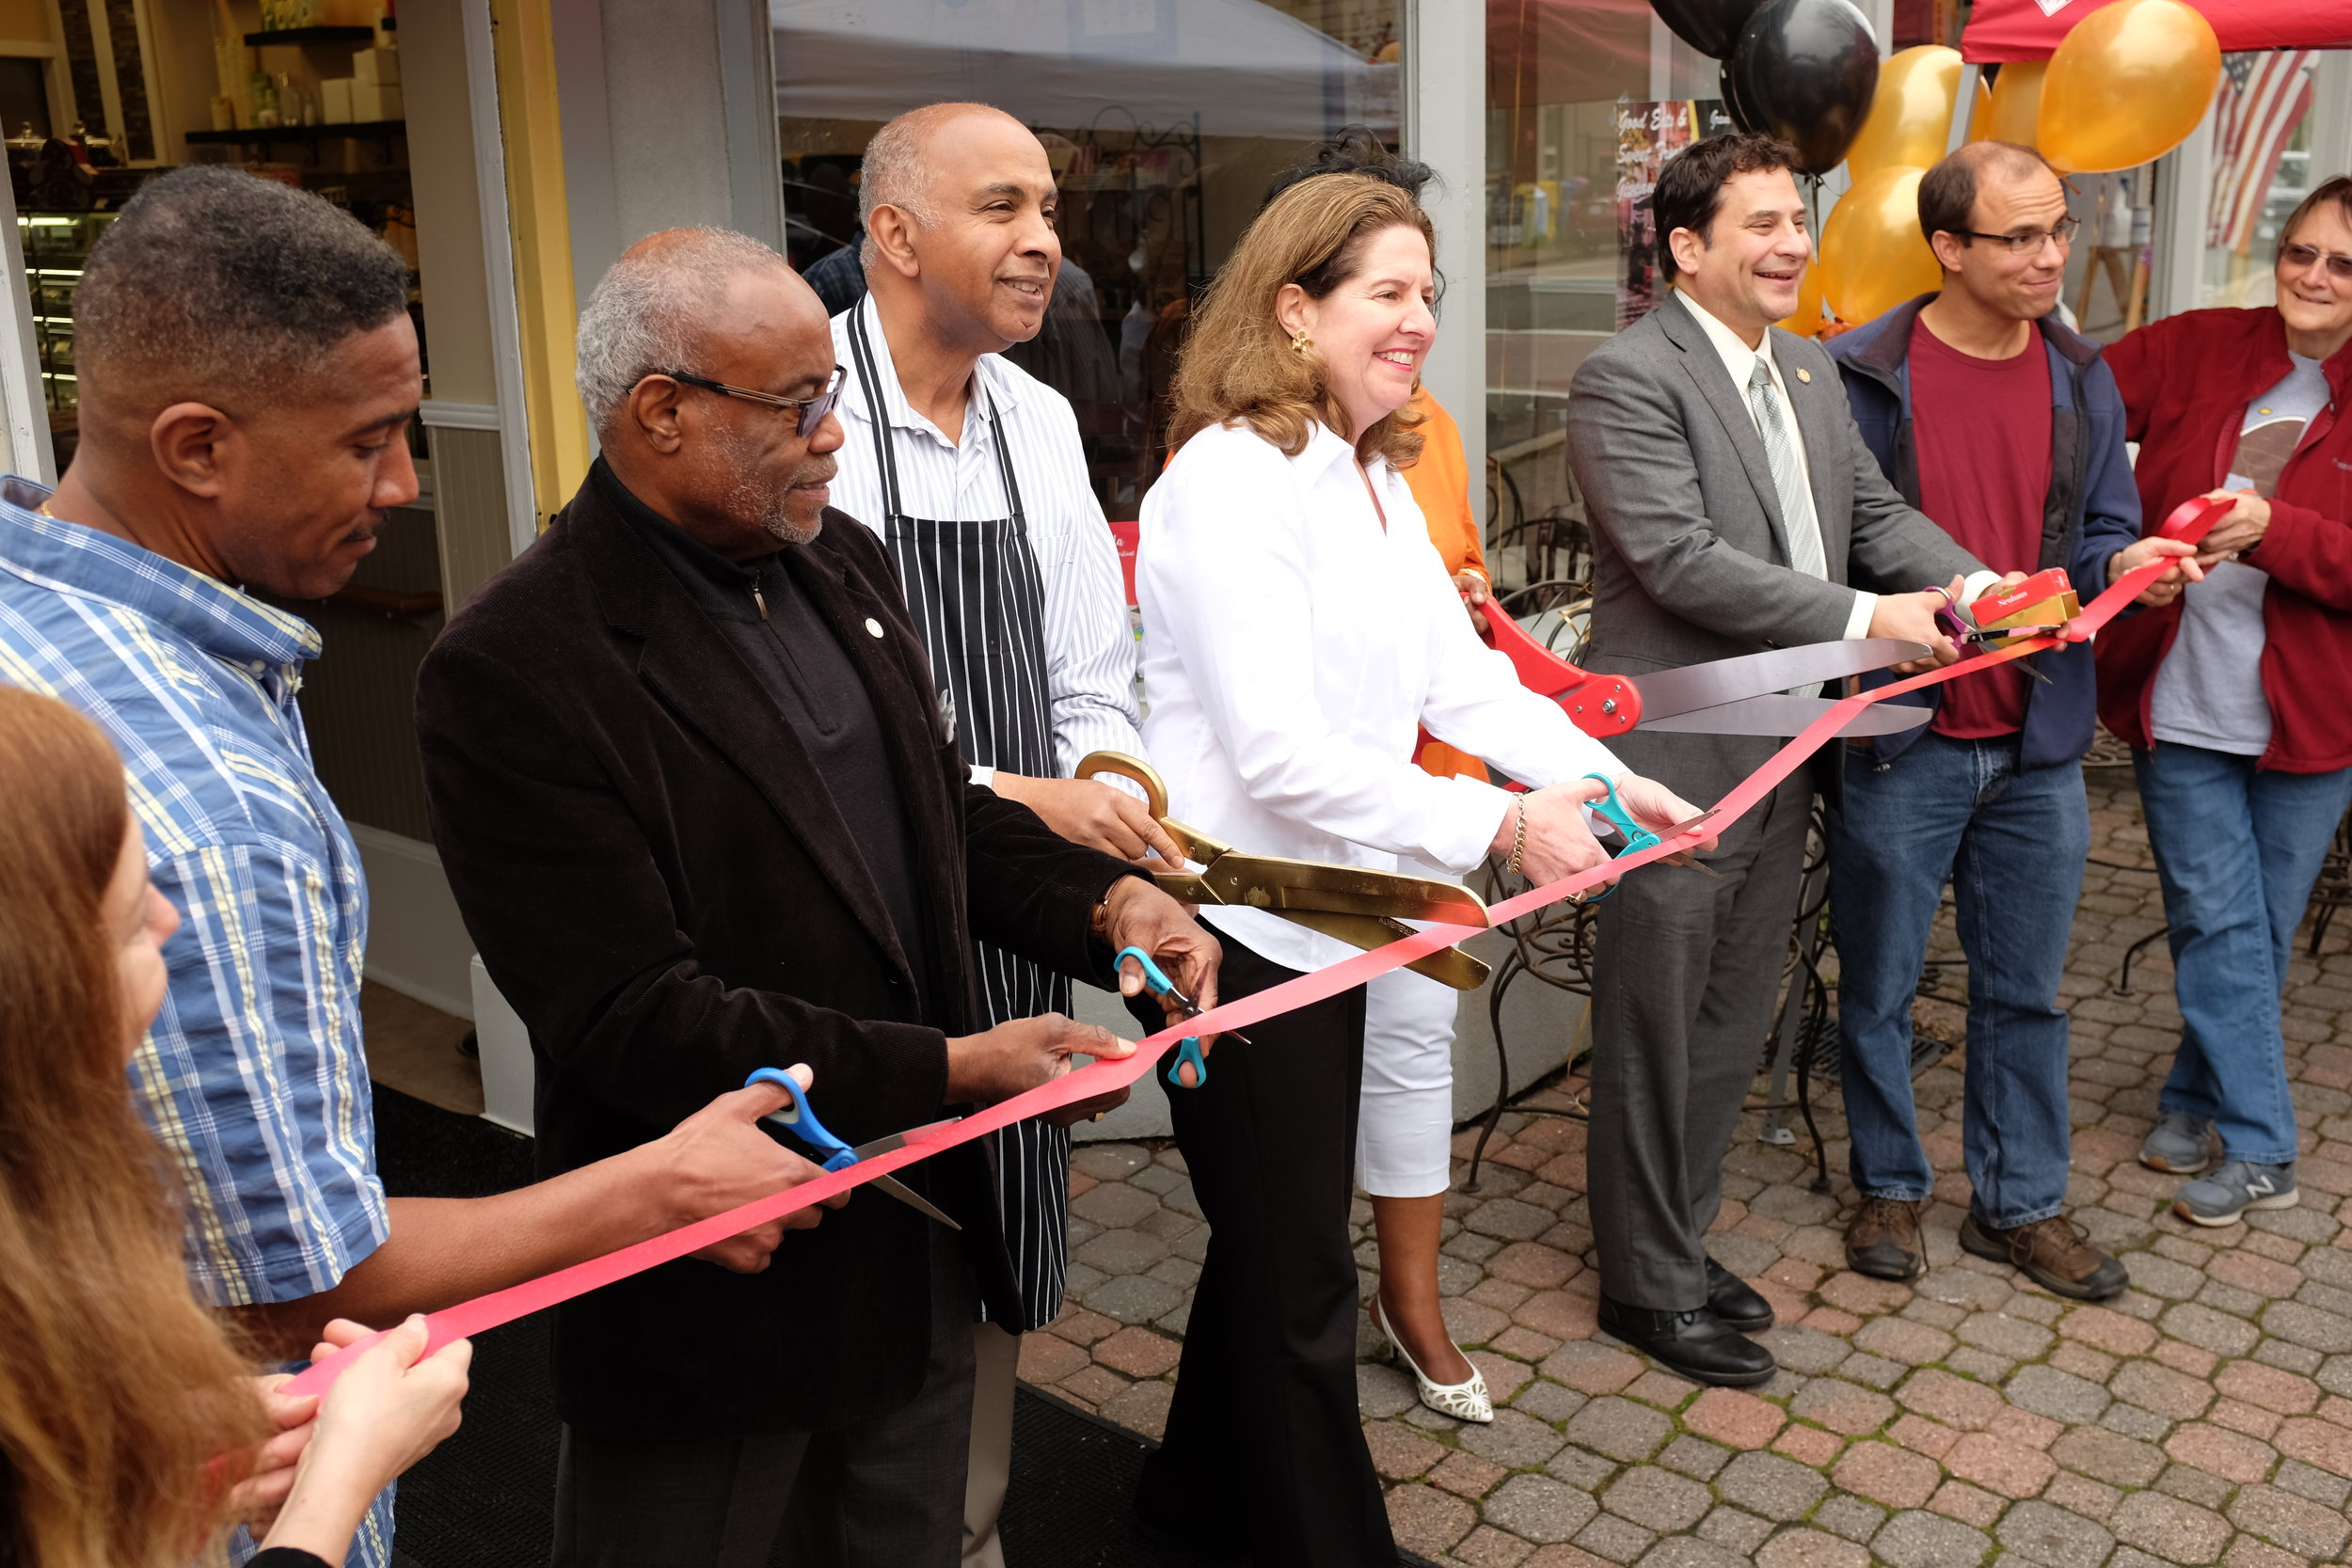 The Mayor of Alexandria, Allison Silberberg, leads the ribbon-cutting for Dolce and Bean, a new business on the Avenue selling premium confections, gelato, and coffee. I spend far too much time there.